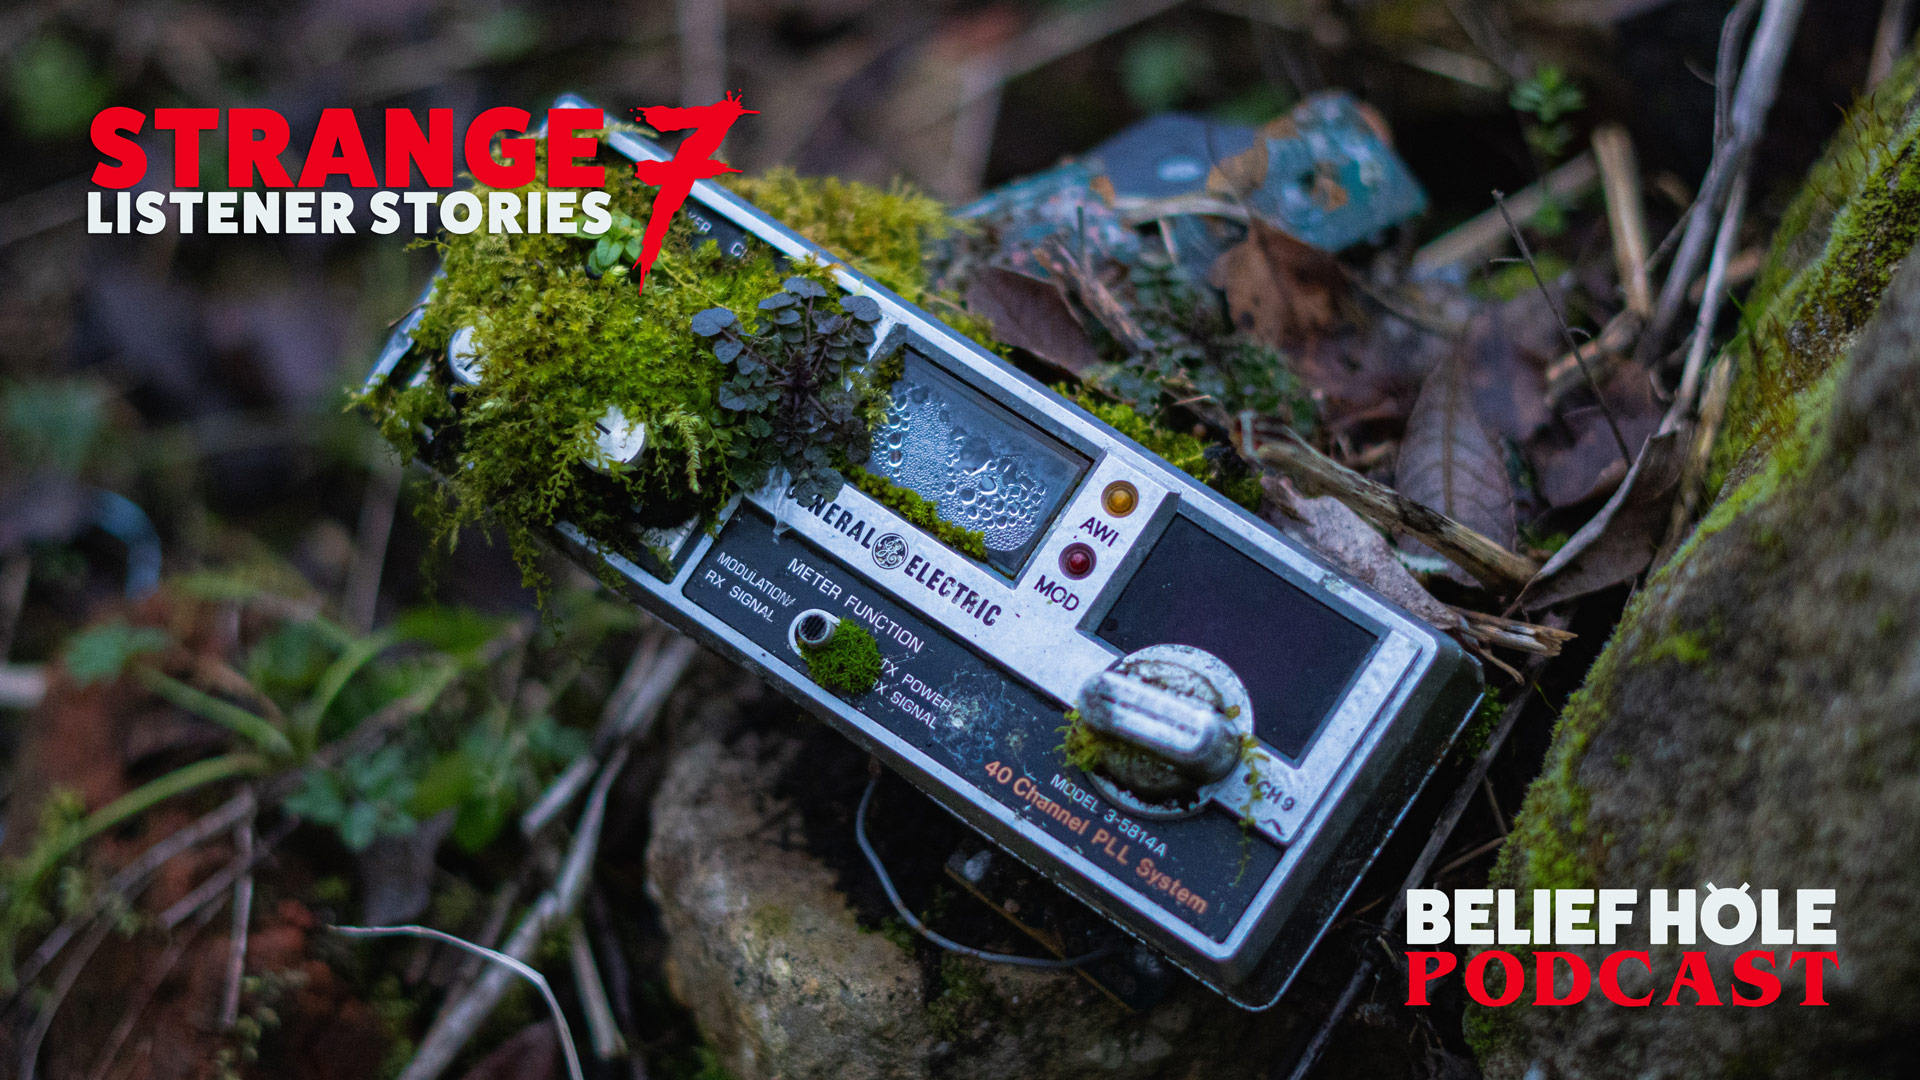 strange listener stories 7 - belief-hole-paranormal-podcast-crawler-story-ufos-ghosts